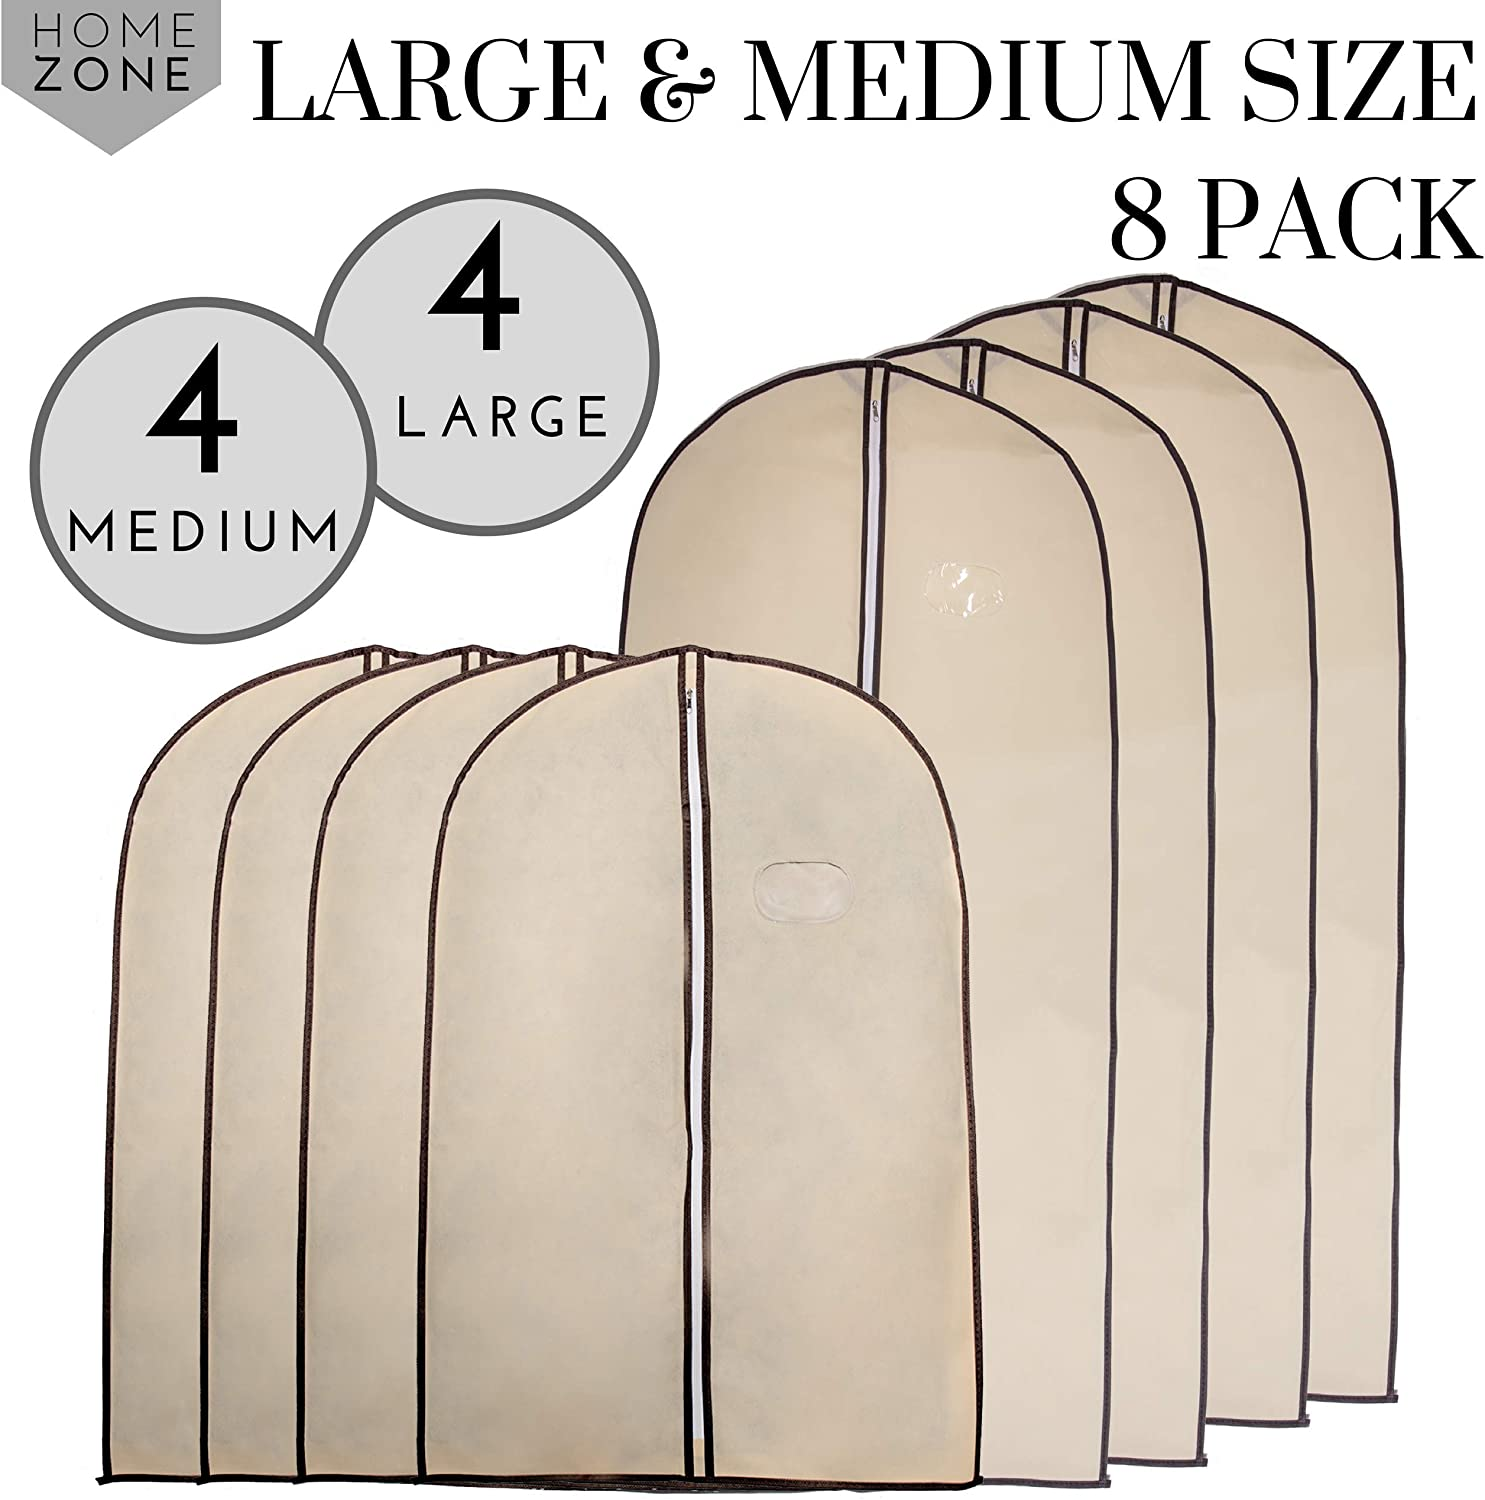 90cms 60cms * Home Zone Medium Pack de 4 transpirable bolsa de ropa ropa Covers Coffee /& Cream Finish